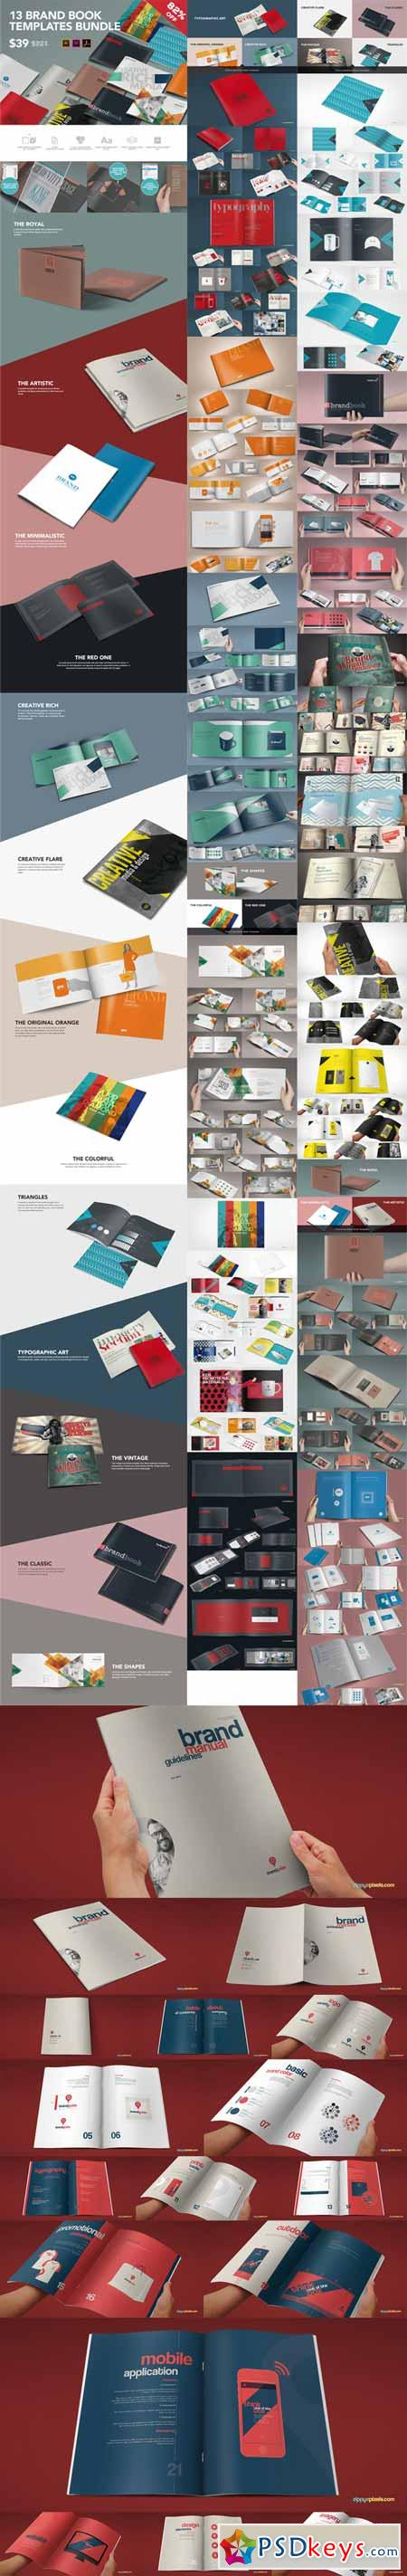 13 Brand Guidelines Templates Bundle 333963 » Free Download ...